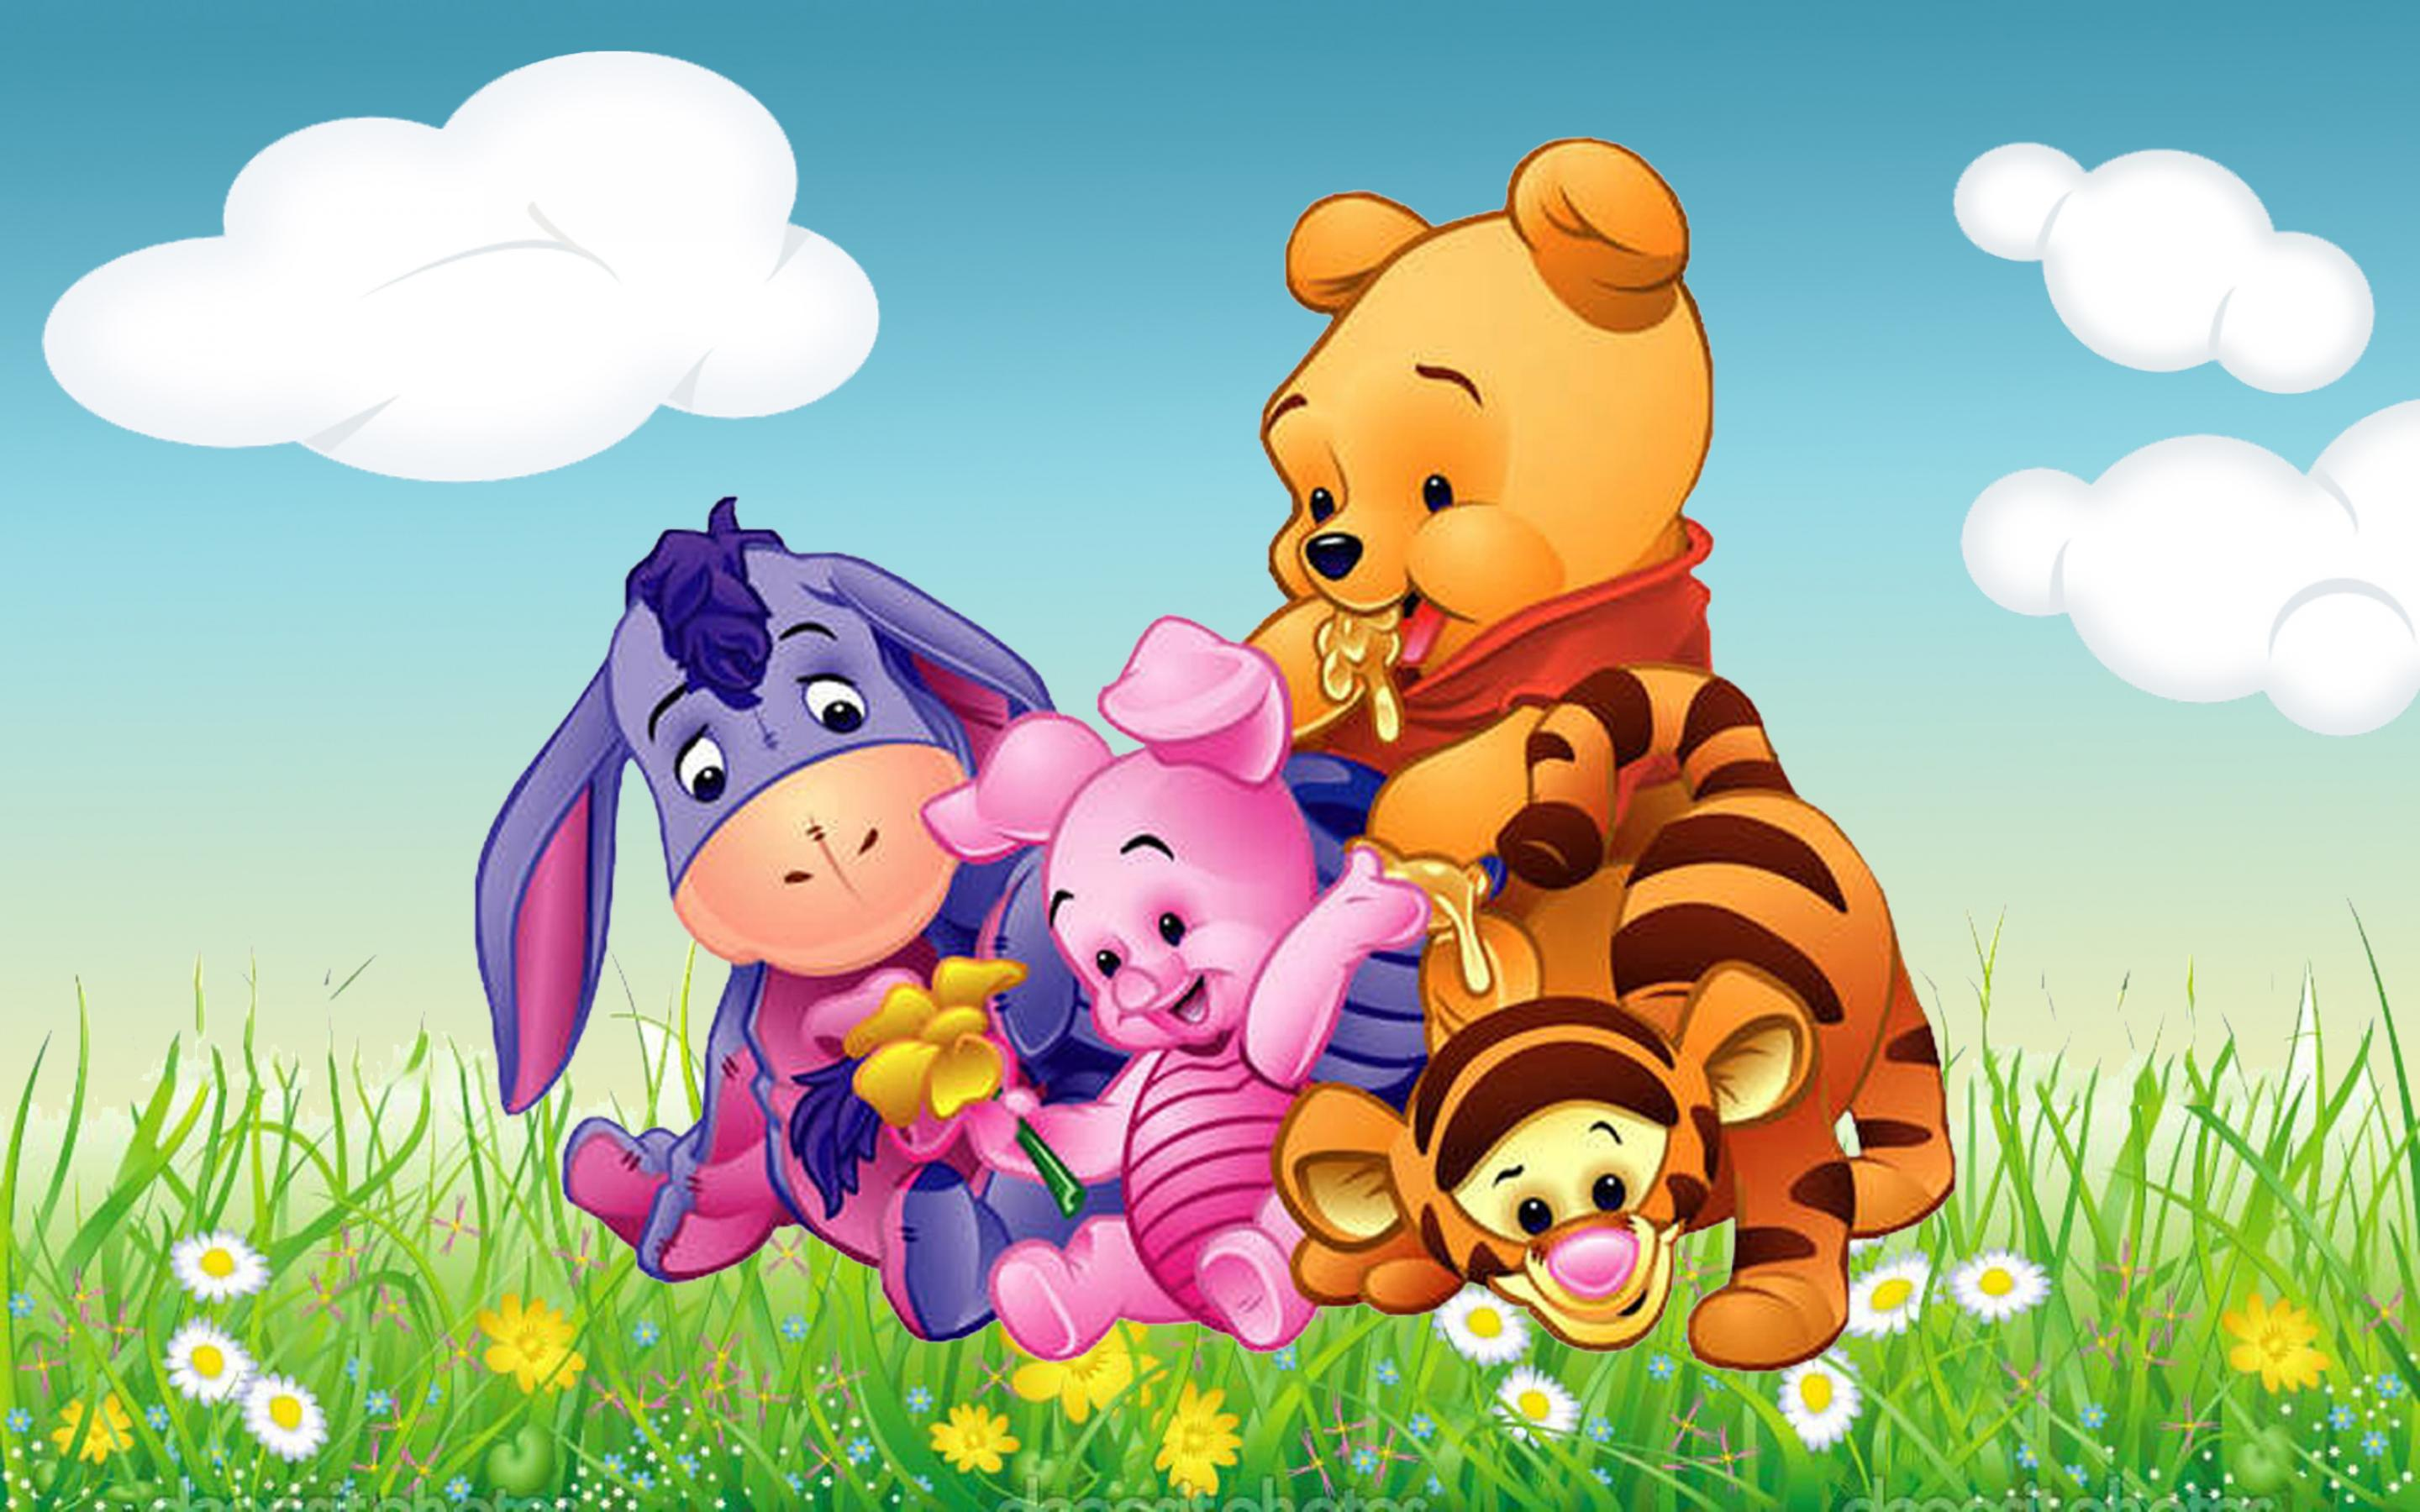 2880x1800 Wallpapers Winnie The Pooh Baby #1S5B17Y | Wall2Born.com